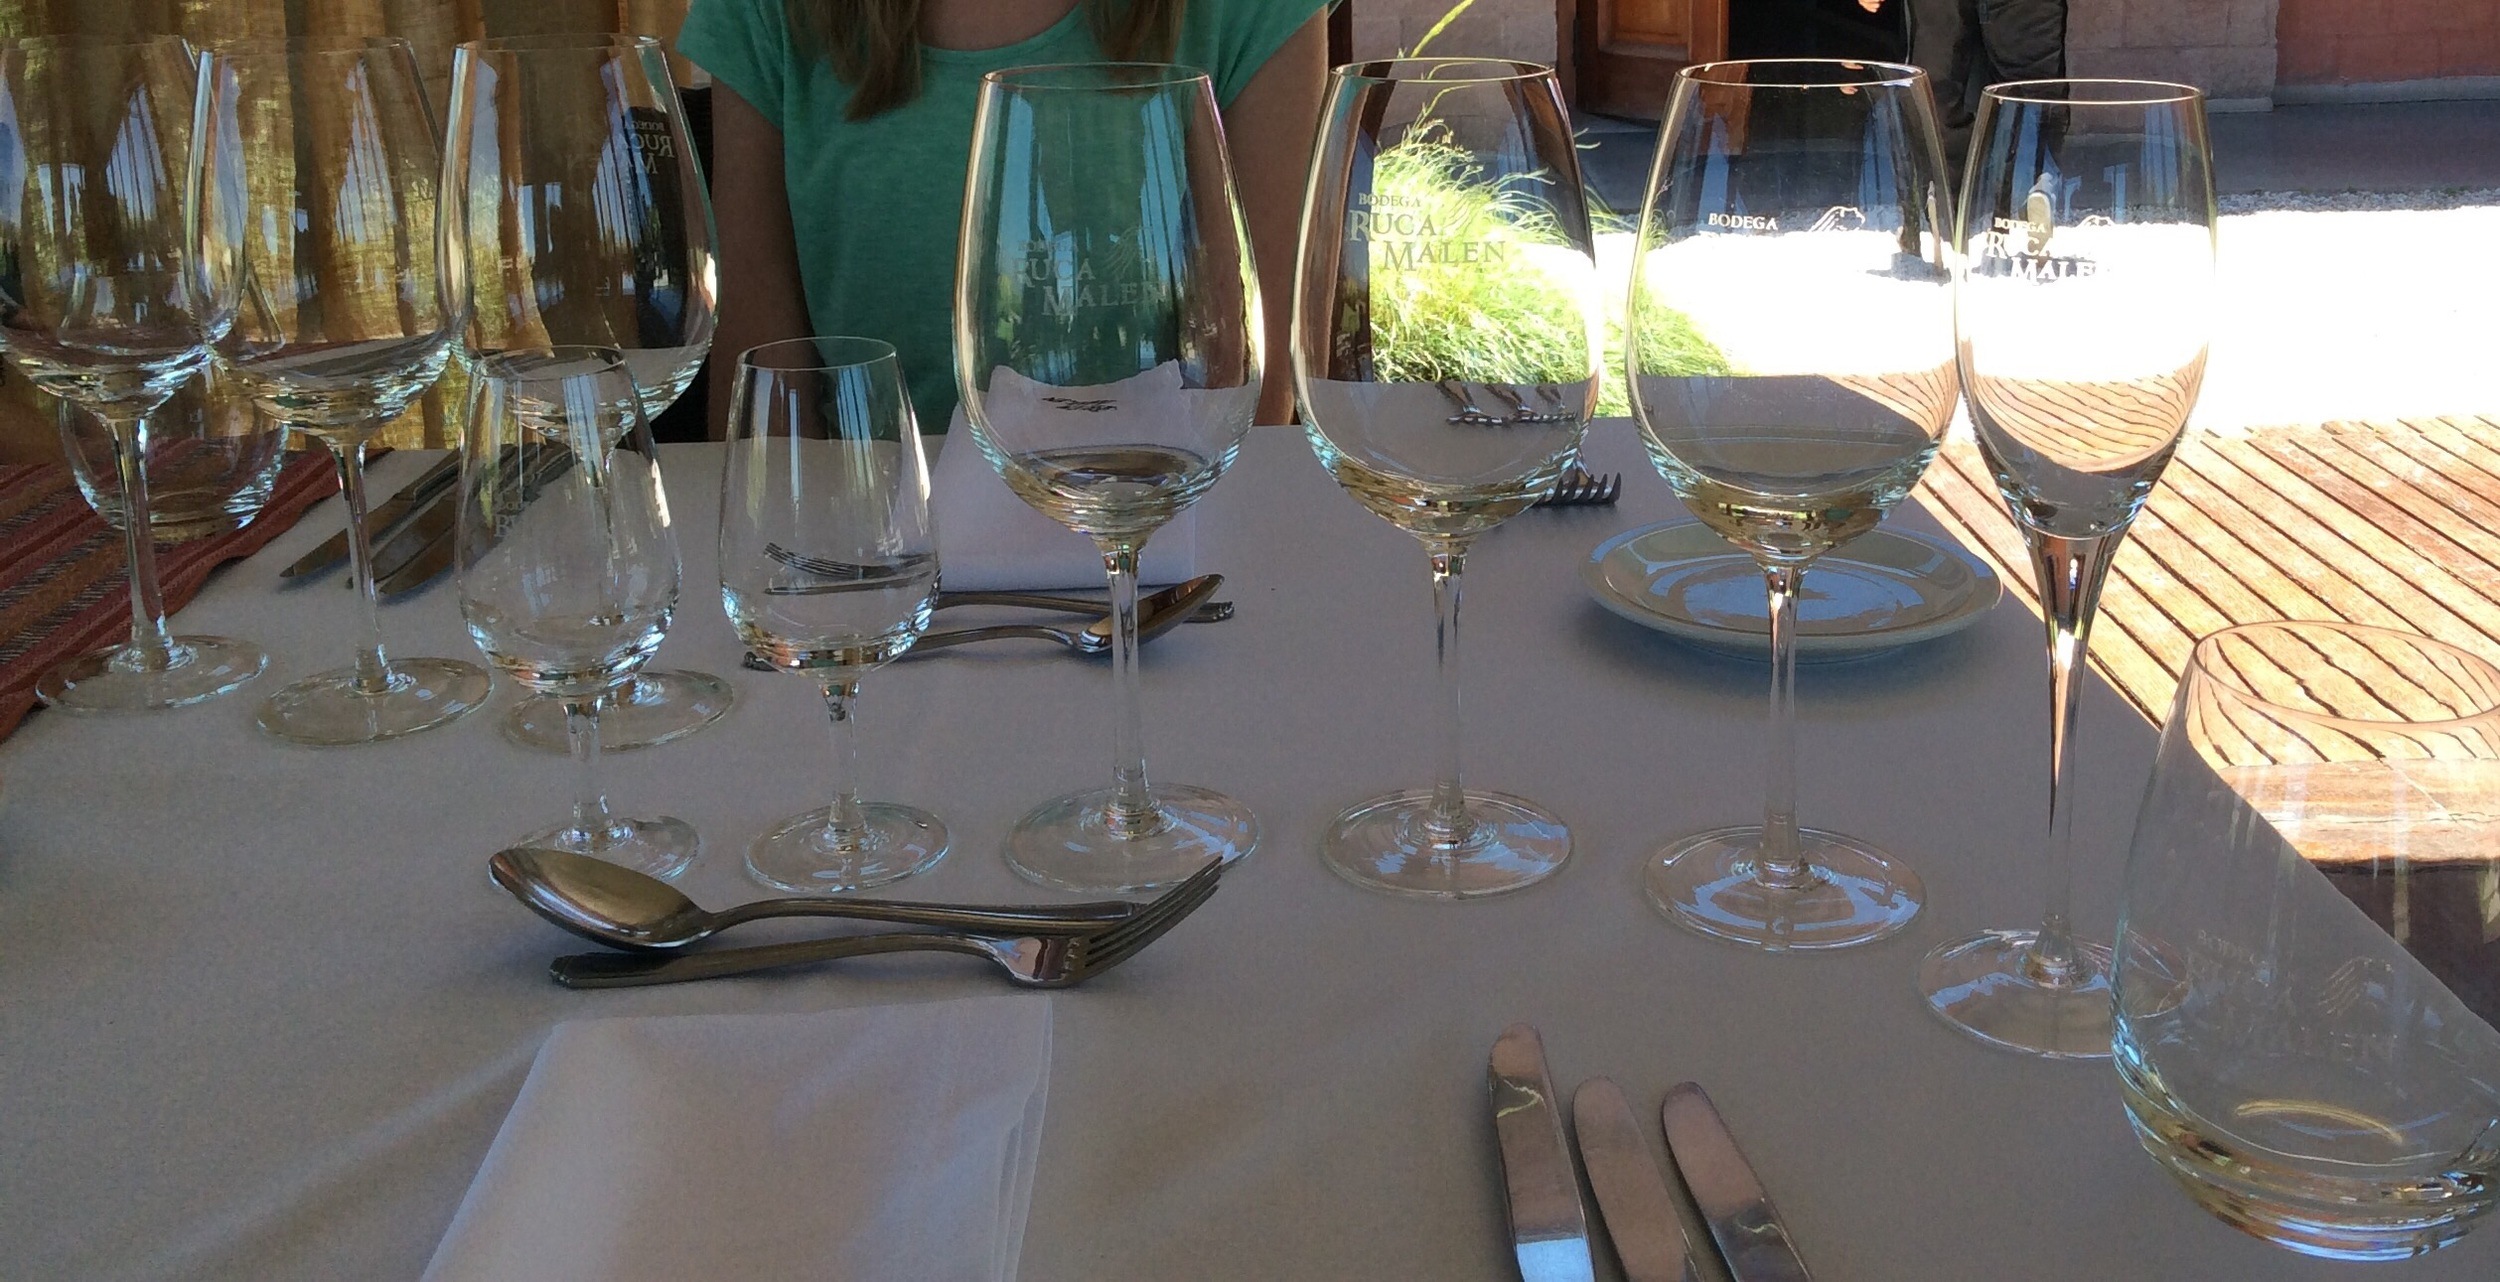 Ready for lunch wine pairing!